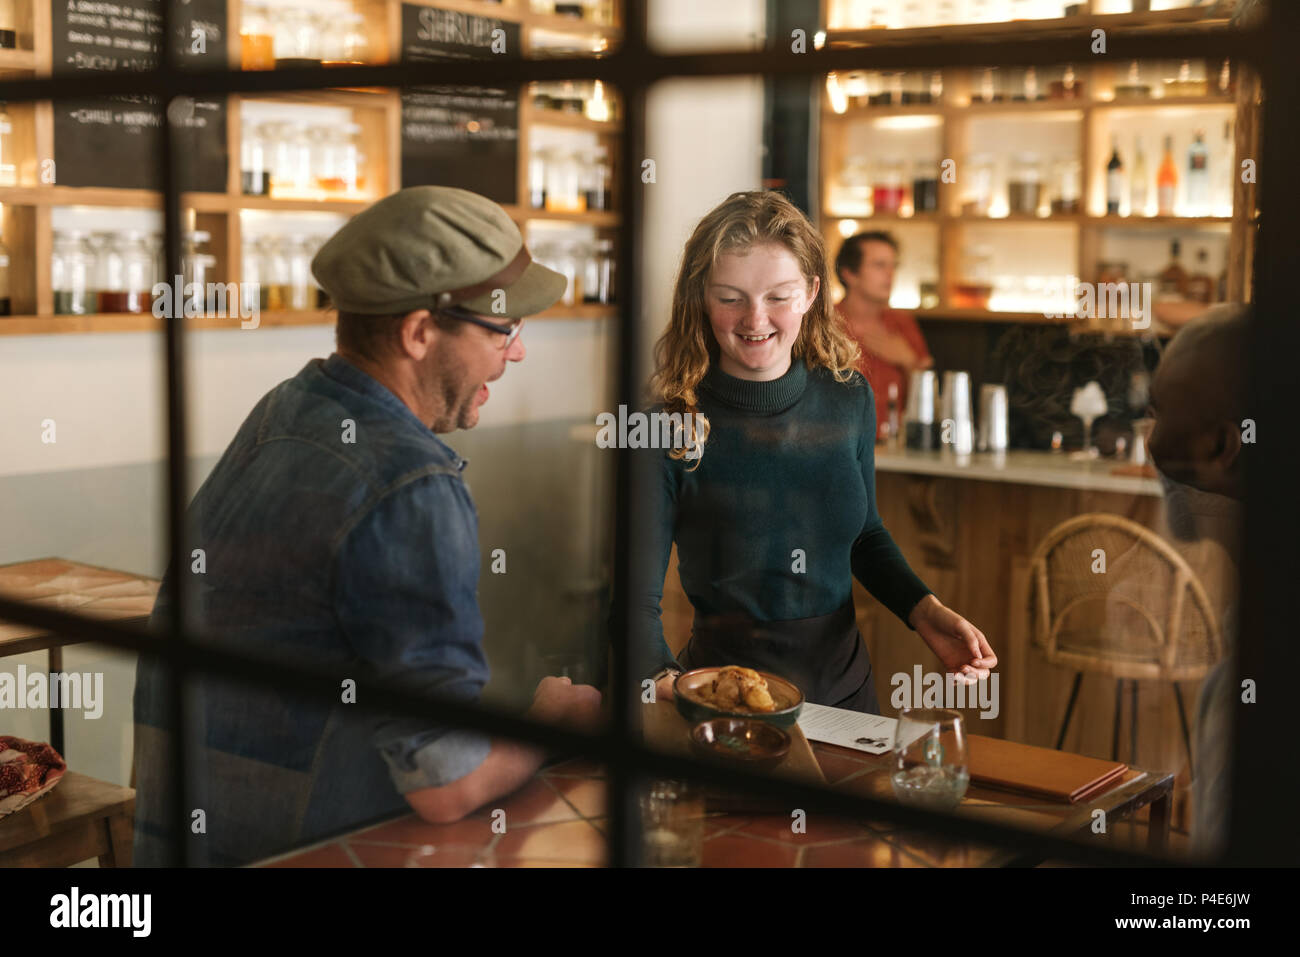 Smiling waitress serving food to a bistro customer - Stock Image